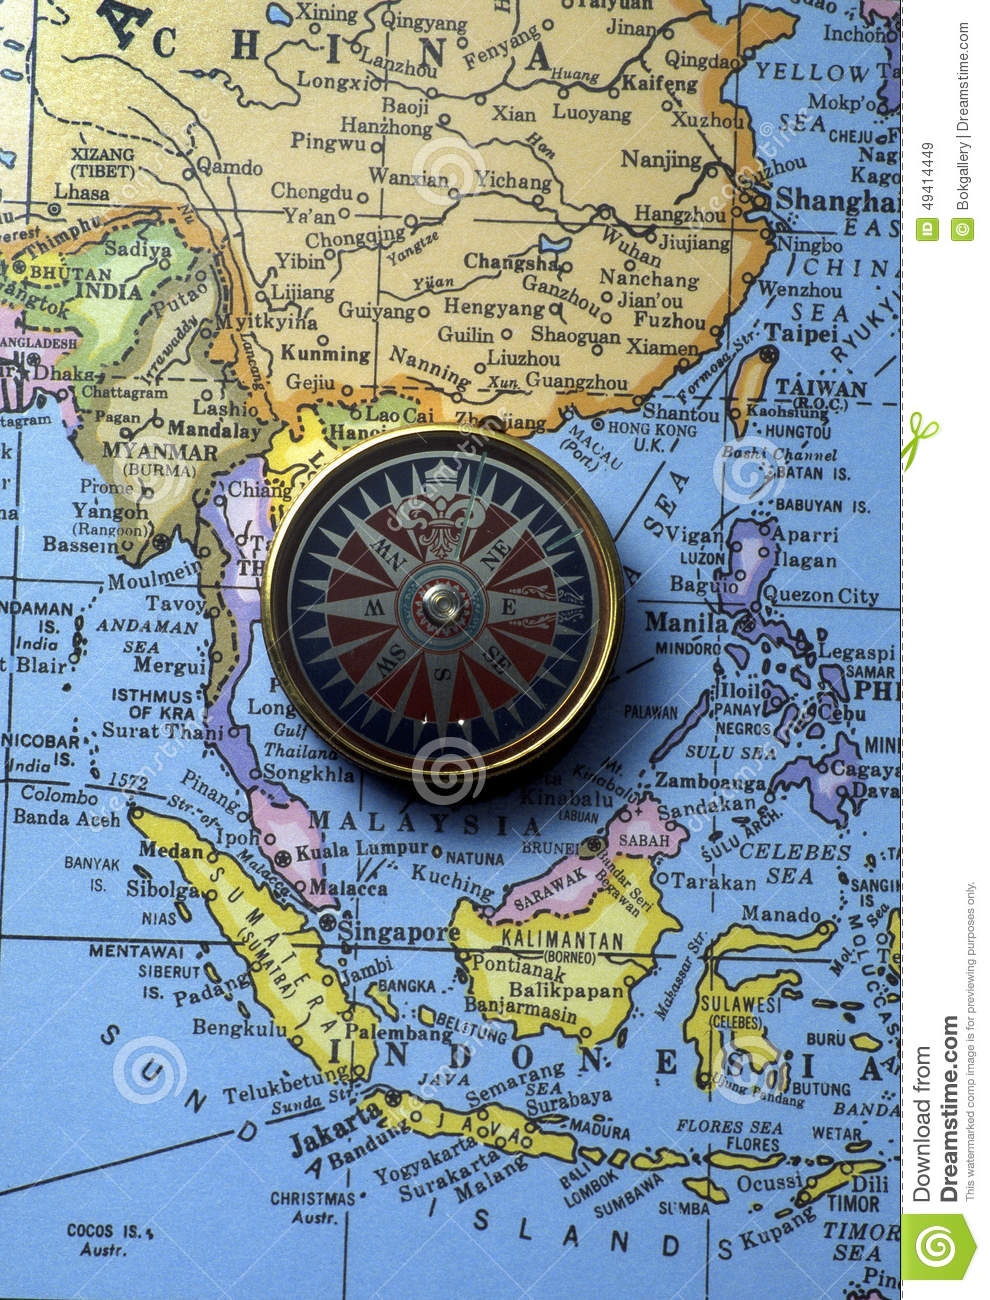 Antique compass on map (South East Asian Region)